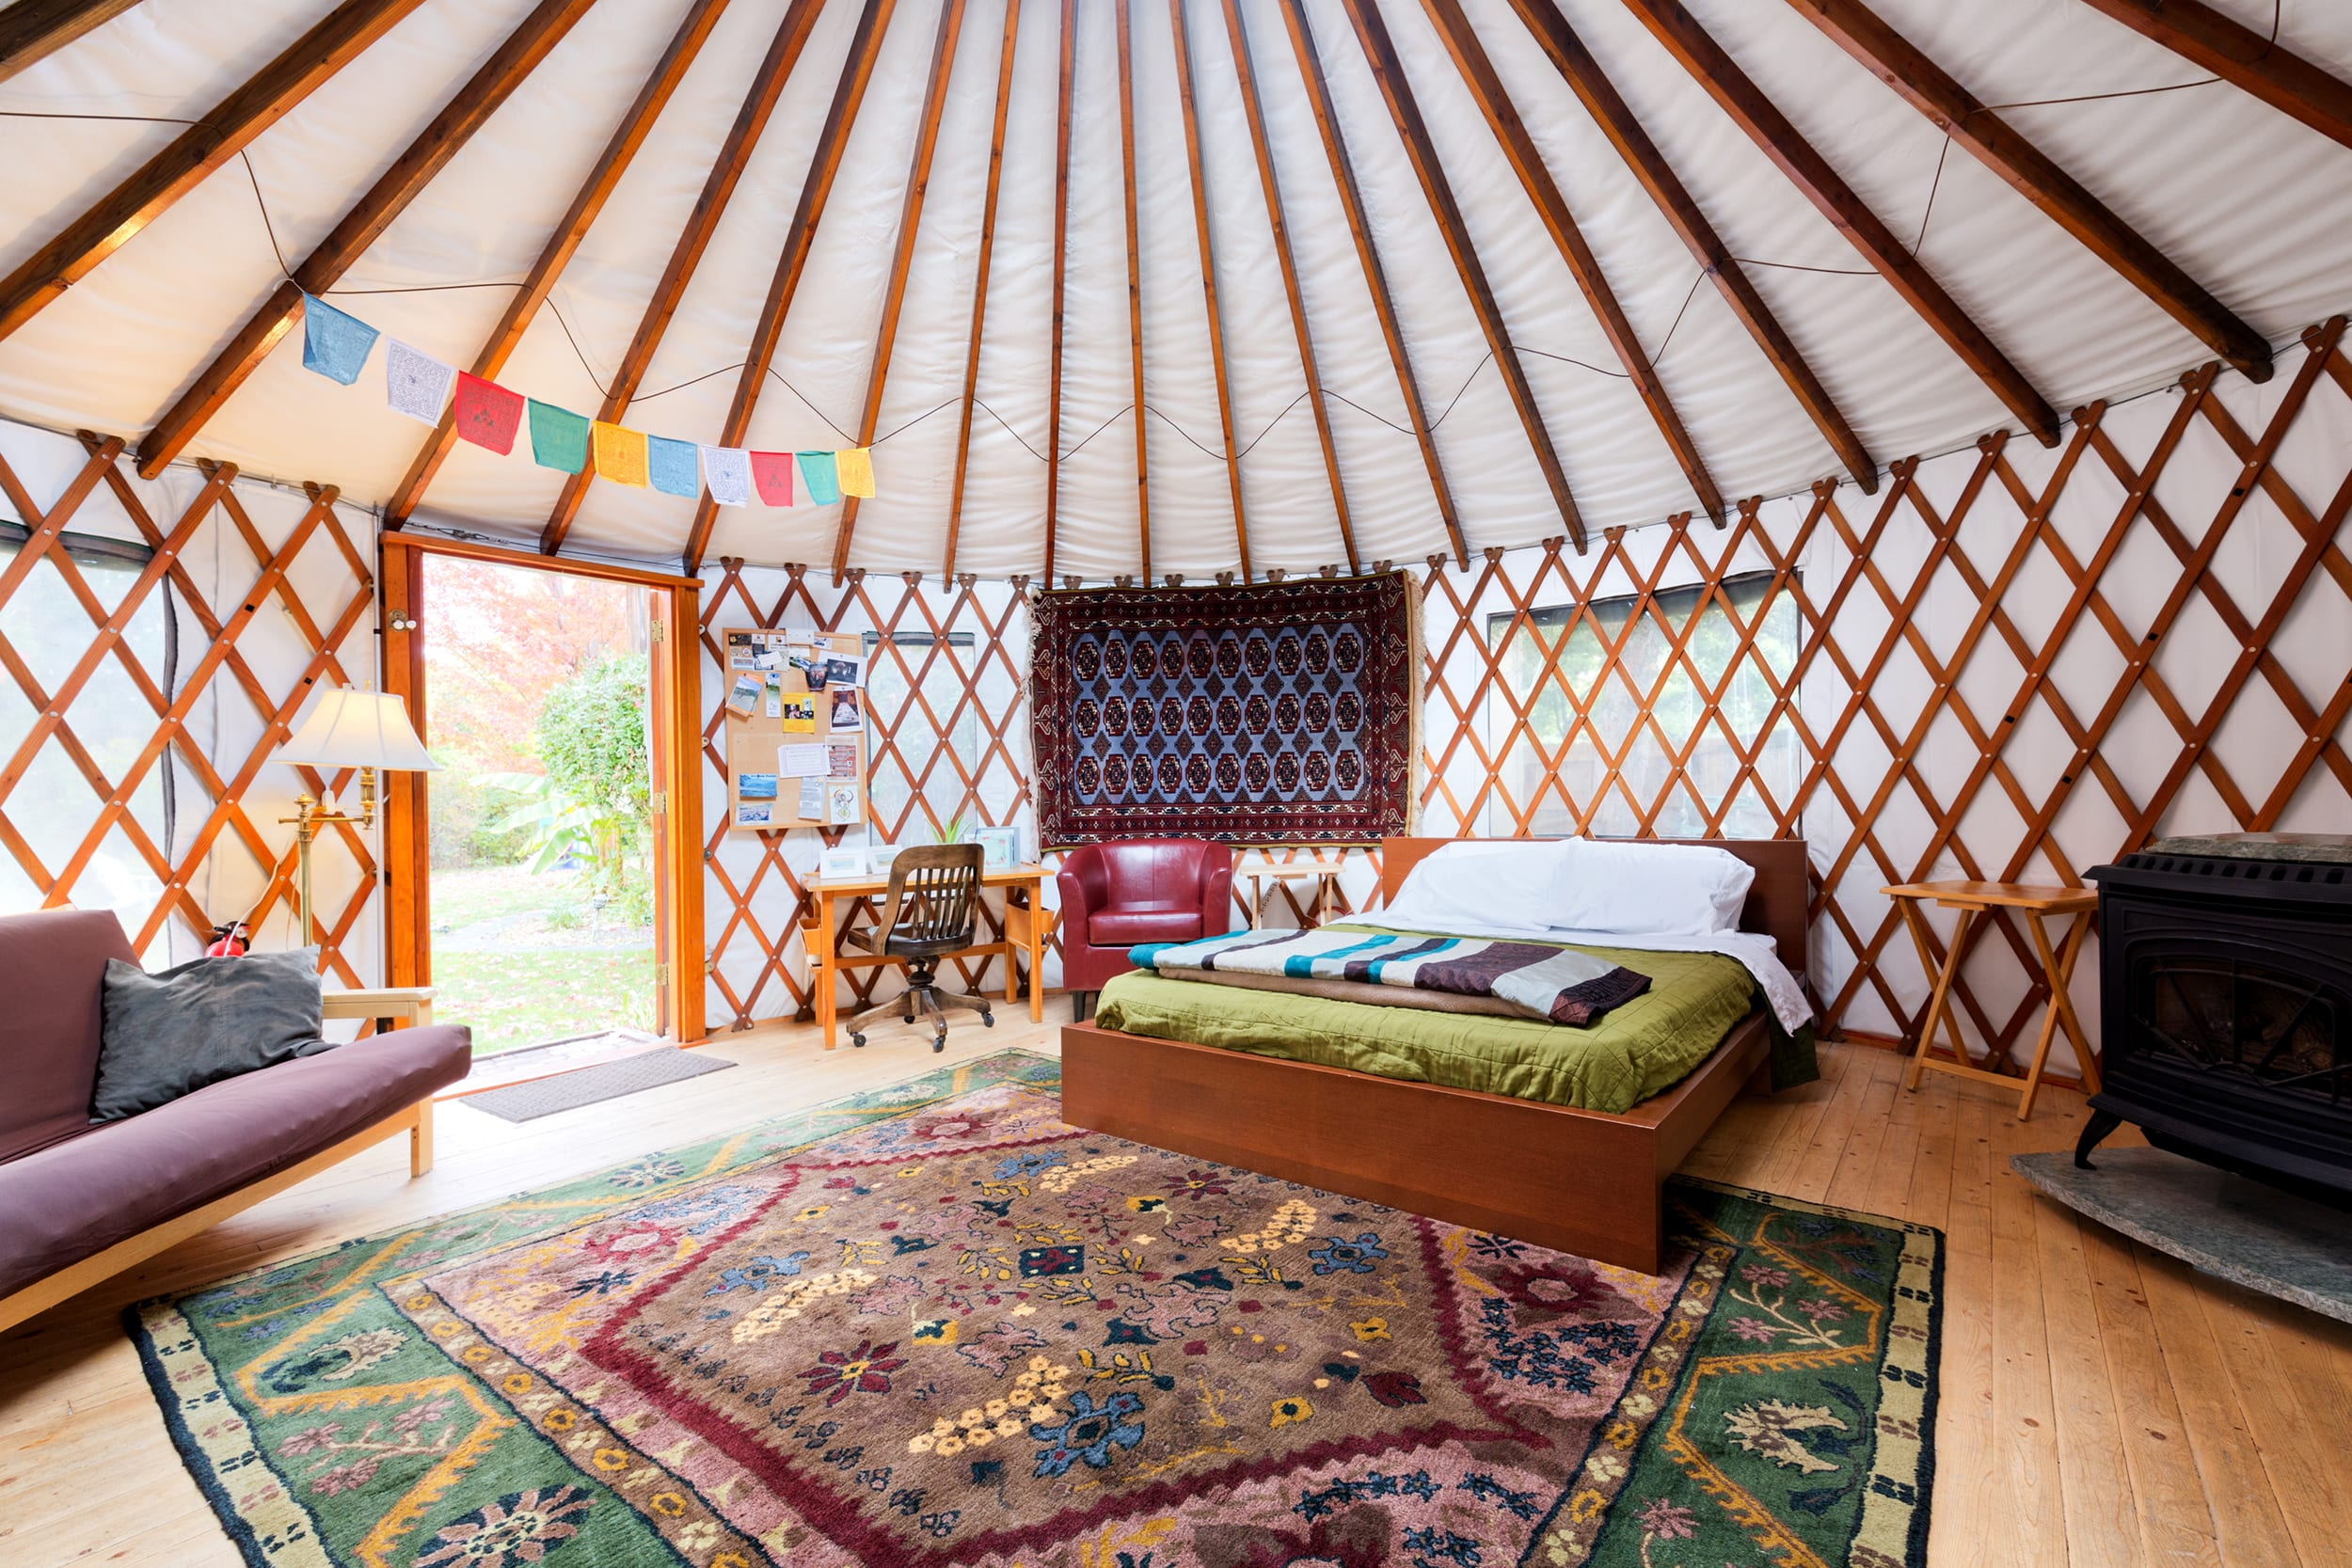 The 36th Street Urban Yurt, in Large Garden Oasis, Boise, ID